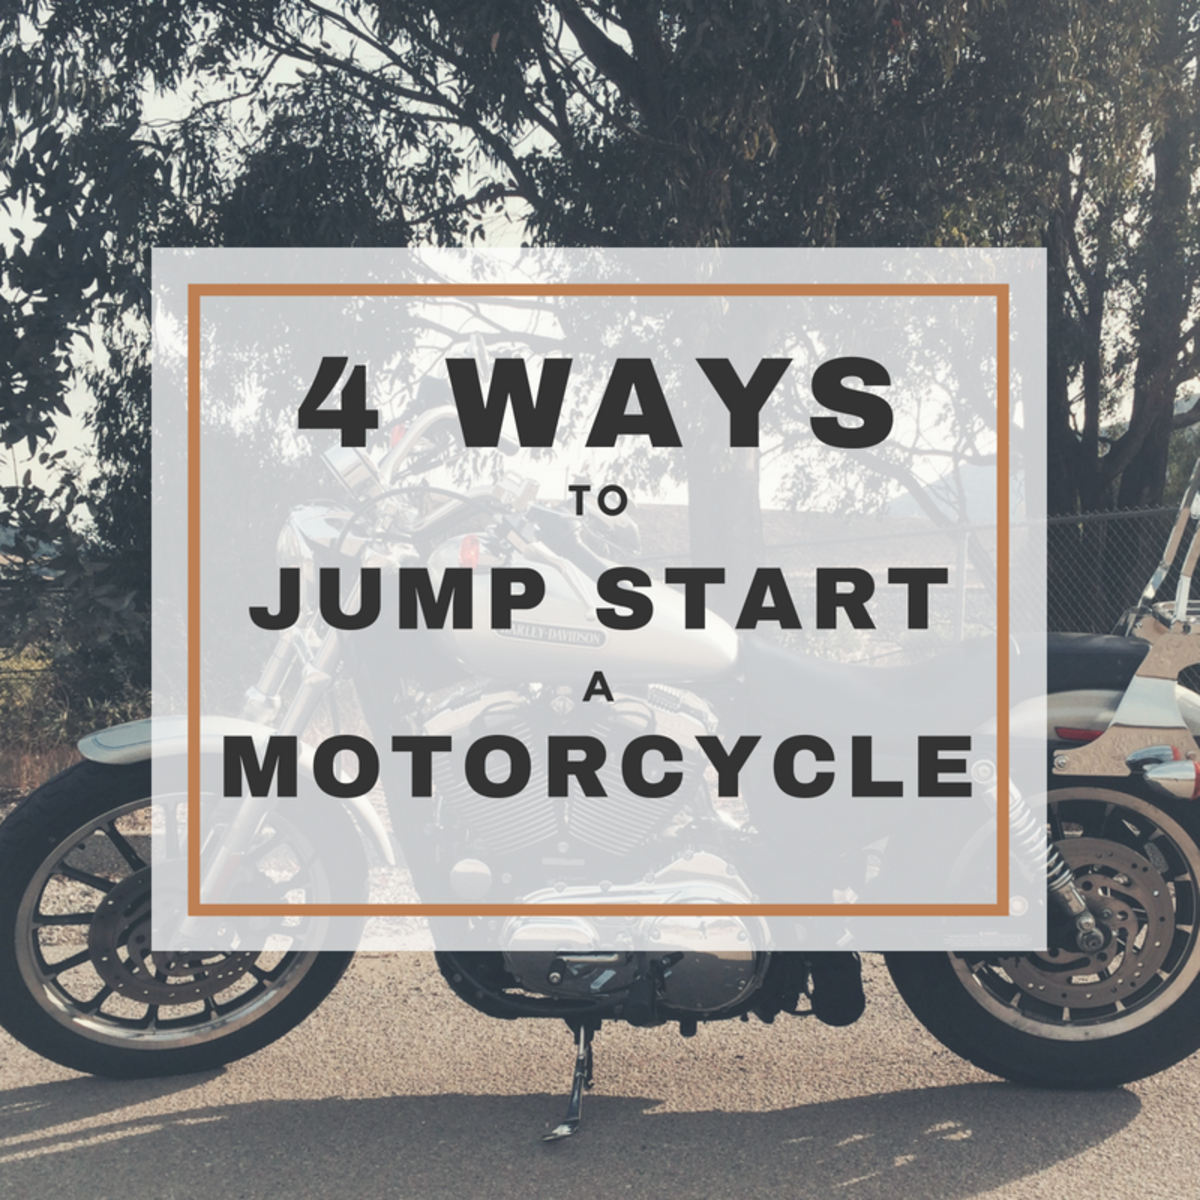 4 Ways to Jump Start a Motorcycle